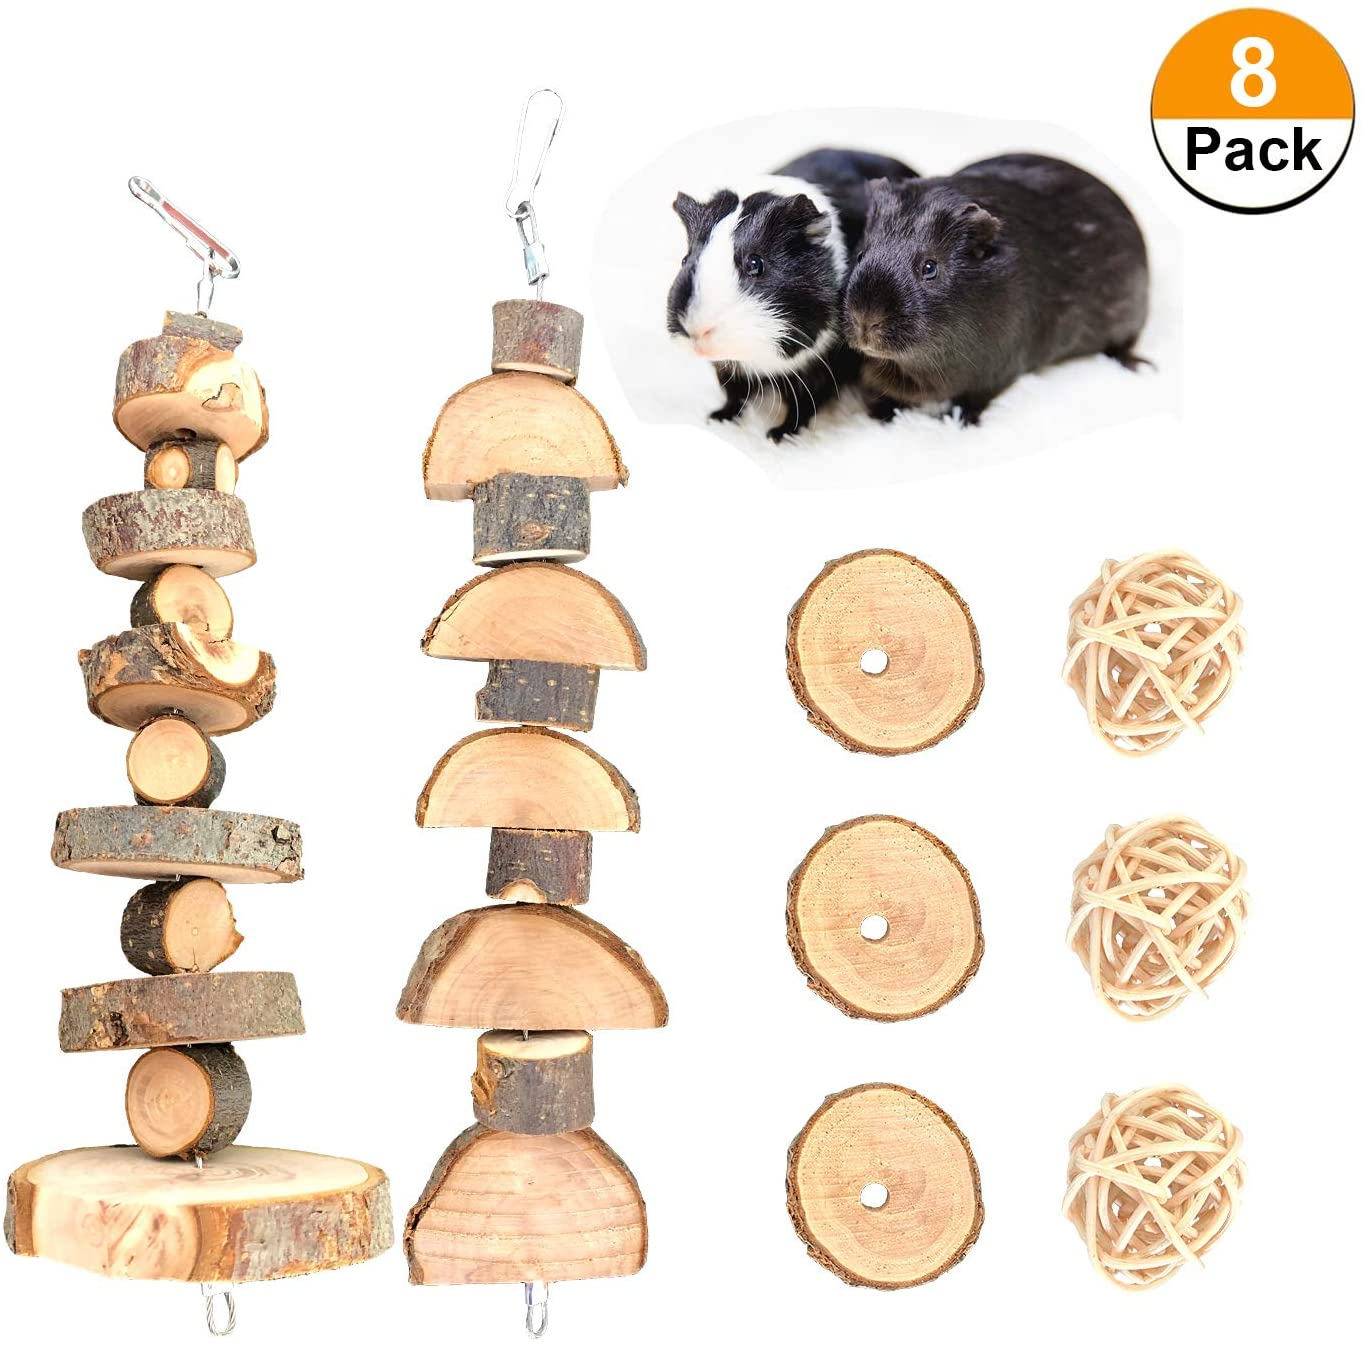 S-Mechanic Bunny Chew Toys Natural Apple Wood Small Animal Chew Toys for Rabbits Chinchilla Hamsters Guinea Pigs Gerbils